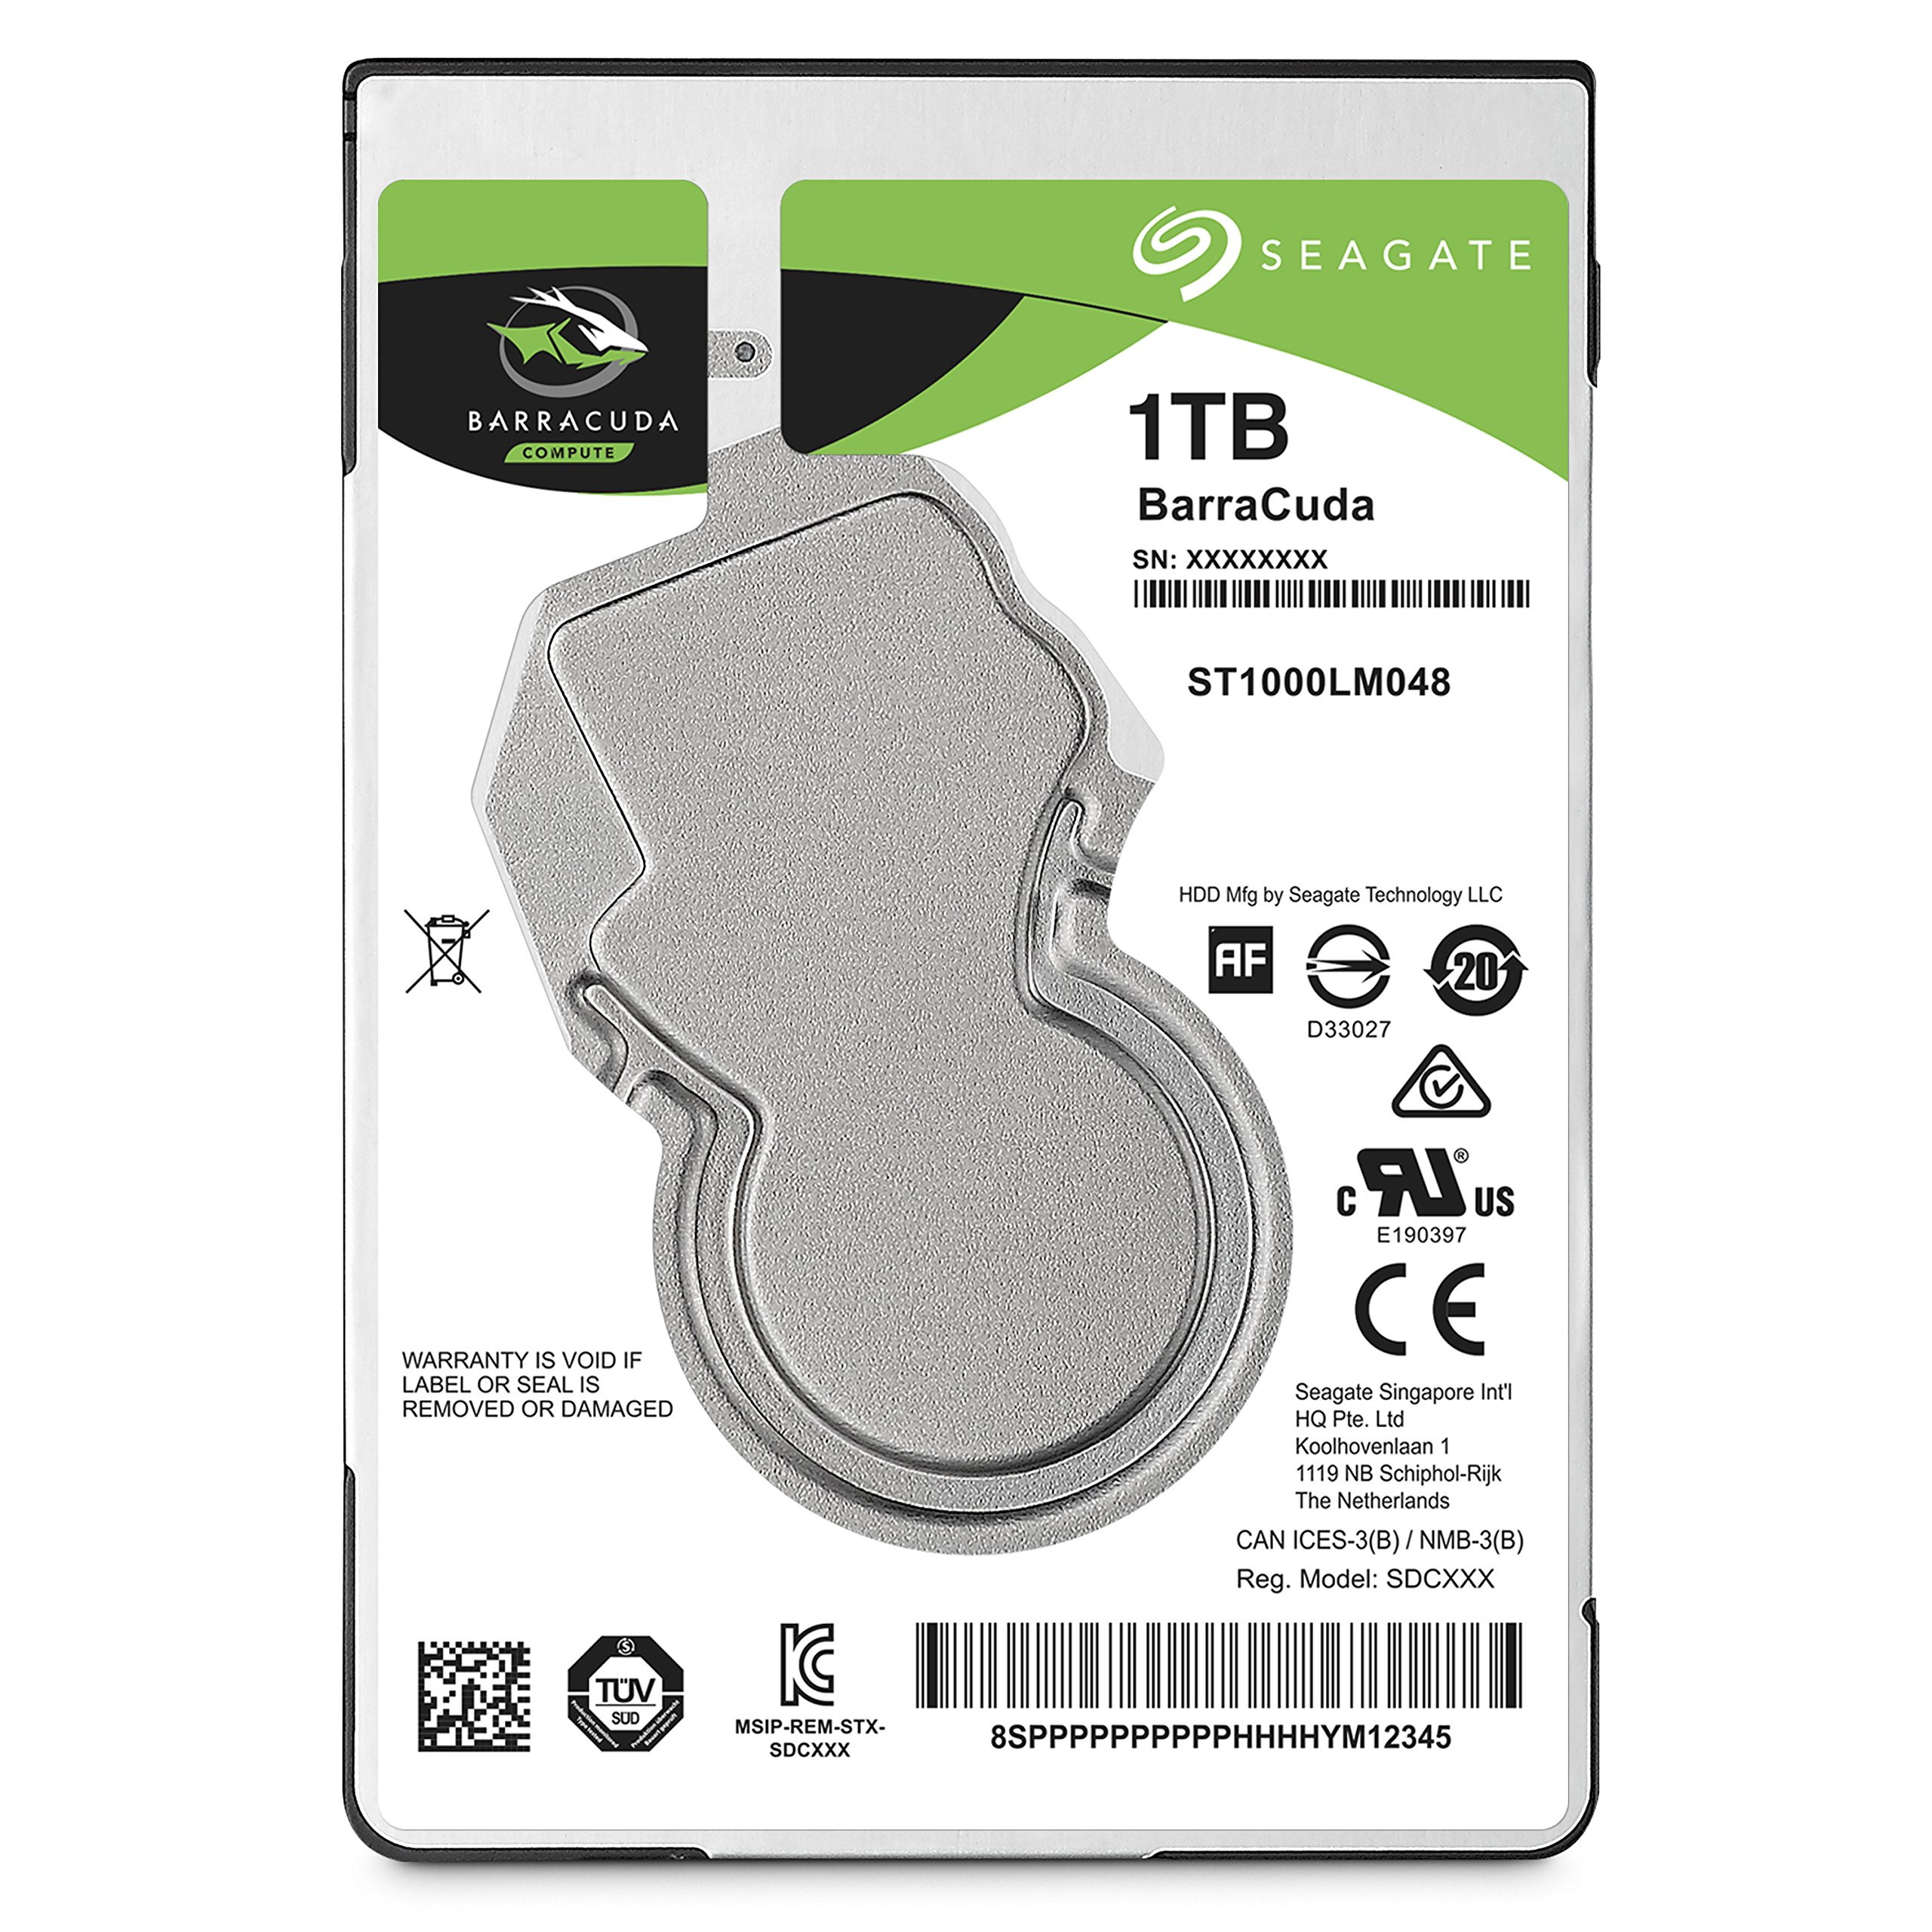 Seagate 1TB BarraCuda SATA 6Gb/s 128MB Cache 2.5-Inch 7mm Internal Hard Drive (ST1000LMB48)